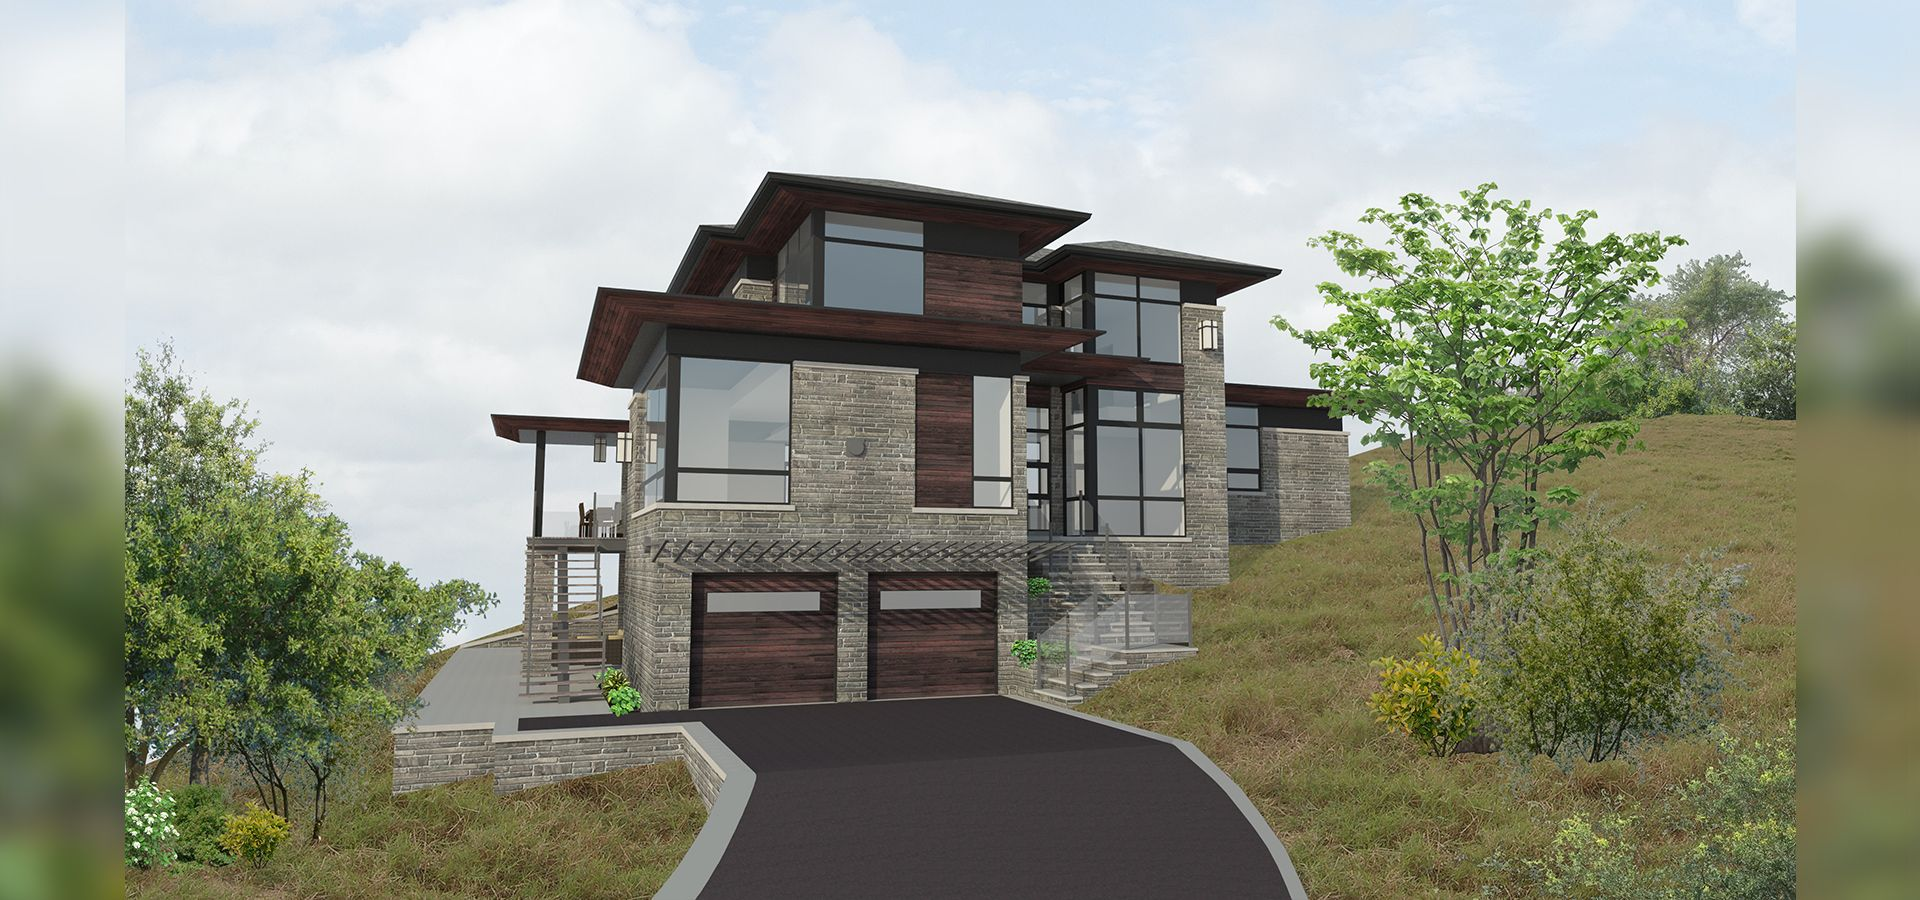 Texas Hillside Modern Portfolio David Small Designs Architectural Design Firm House On Stilts Modern House Plans Hillside House